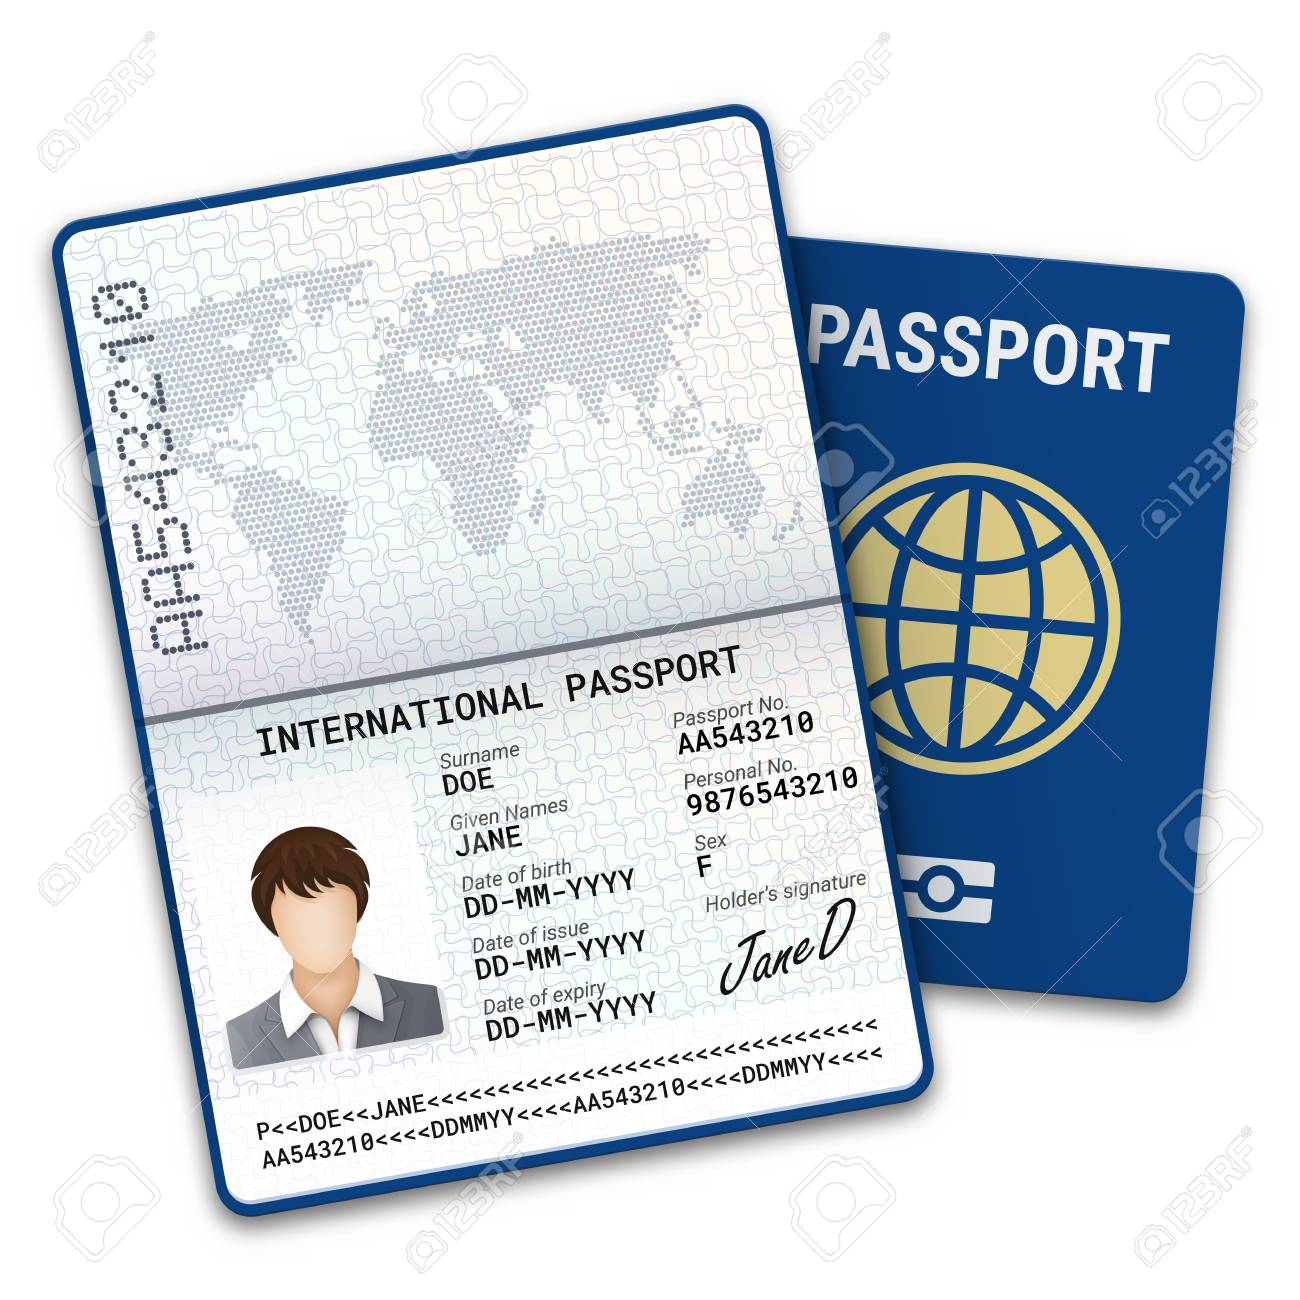 International passport template with biometric data identification